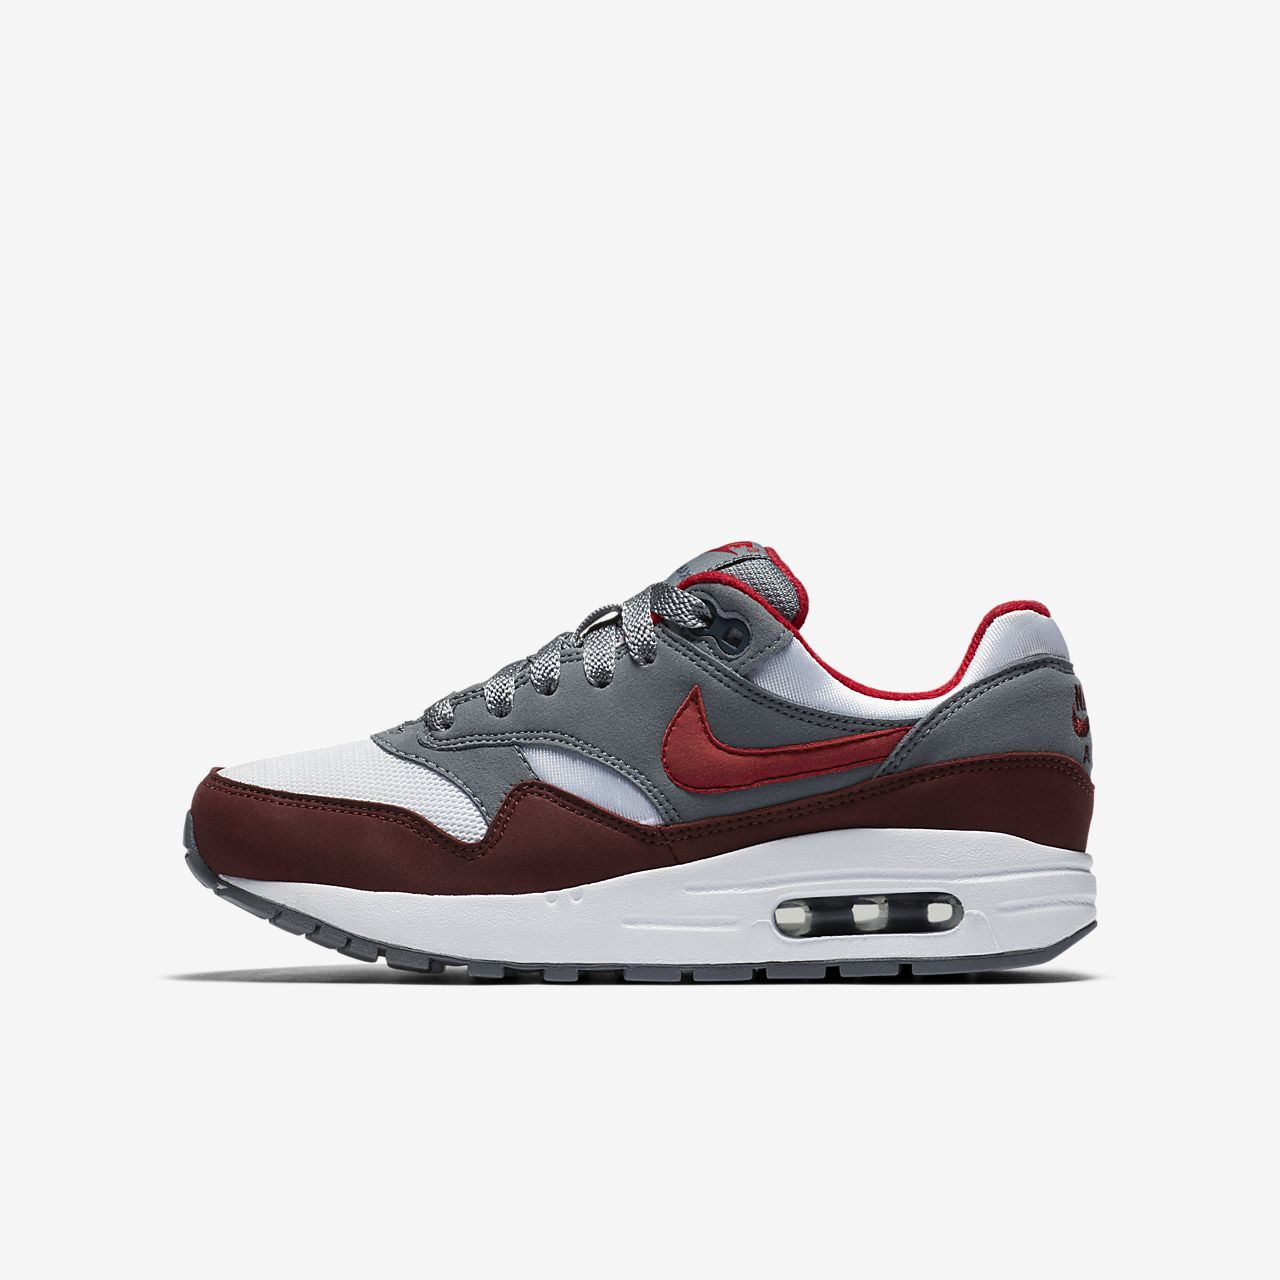 new product 348bf b1242 where to buy air max 2017 lyserød music 575fe 84d7c